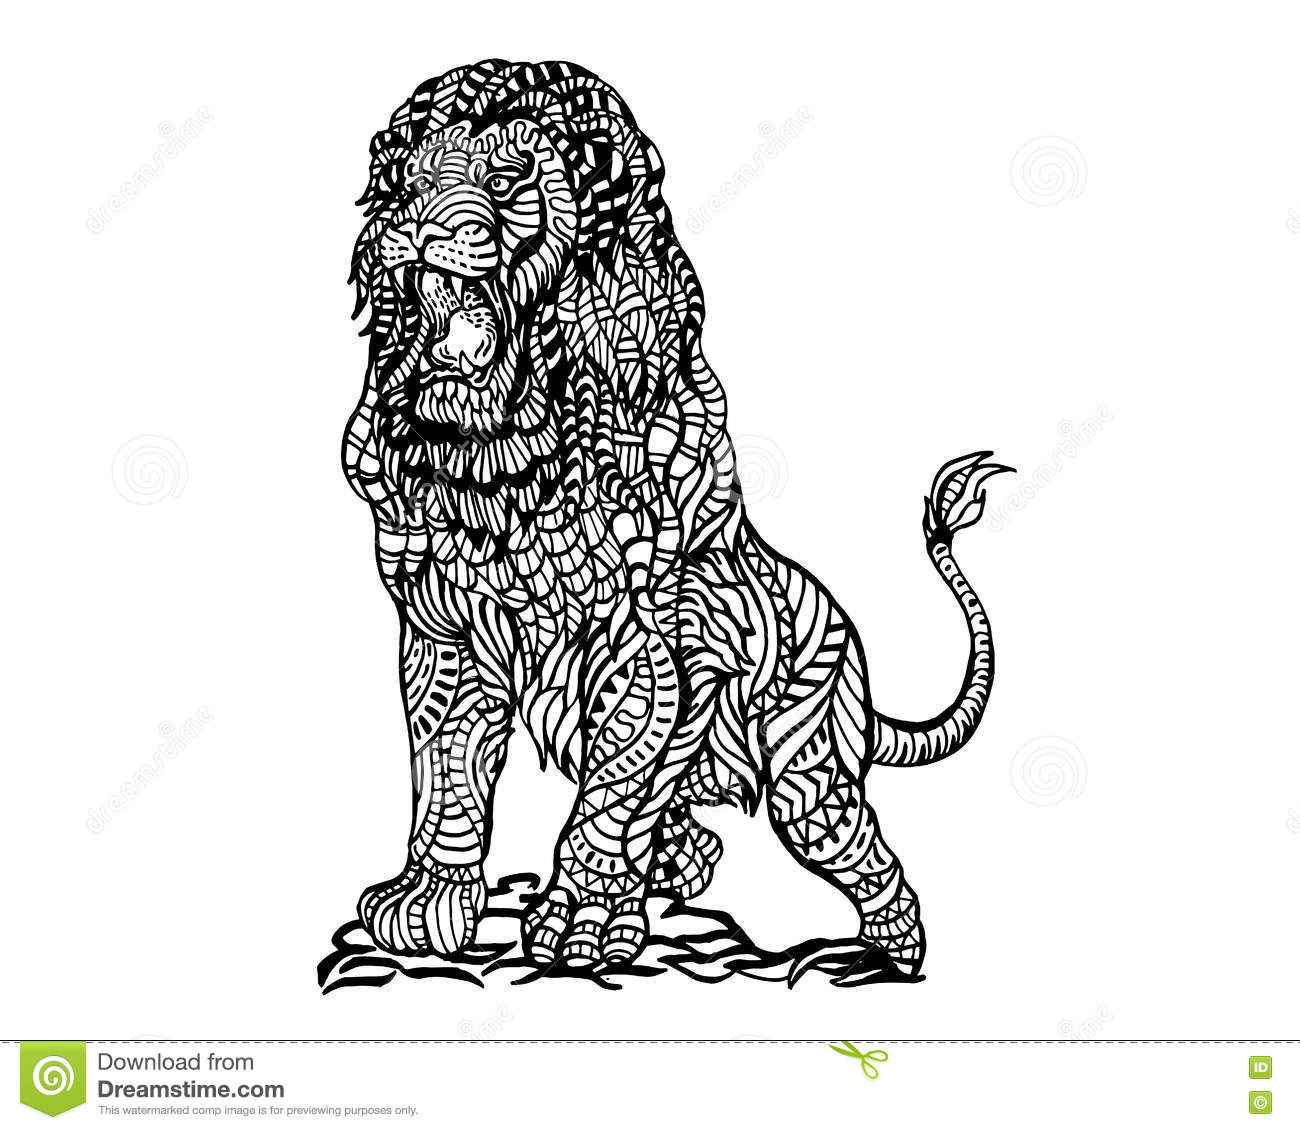 Zen colouring book animals - Ethnic Animal Doodle Detail Pattern Angry Lion Zentangle Illustration Stock Image Download Image Zen Colouring